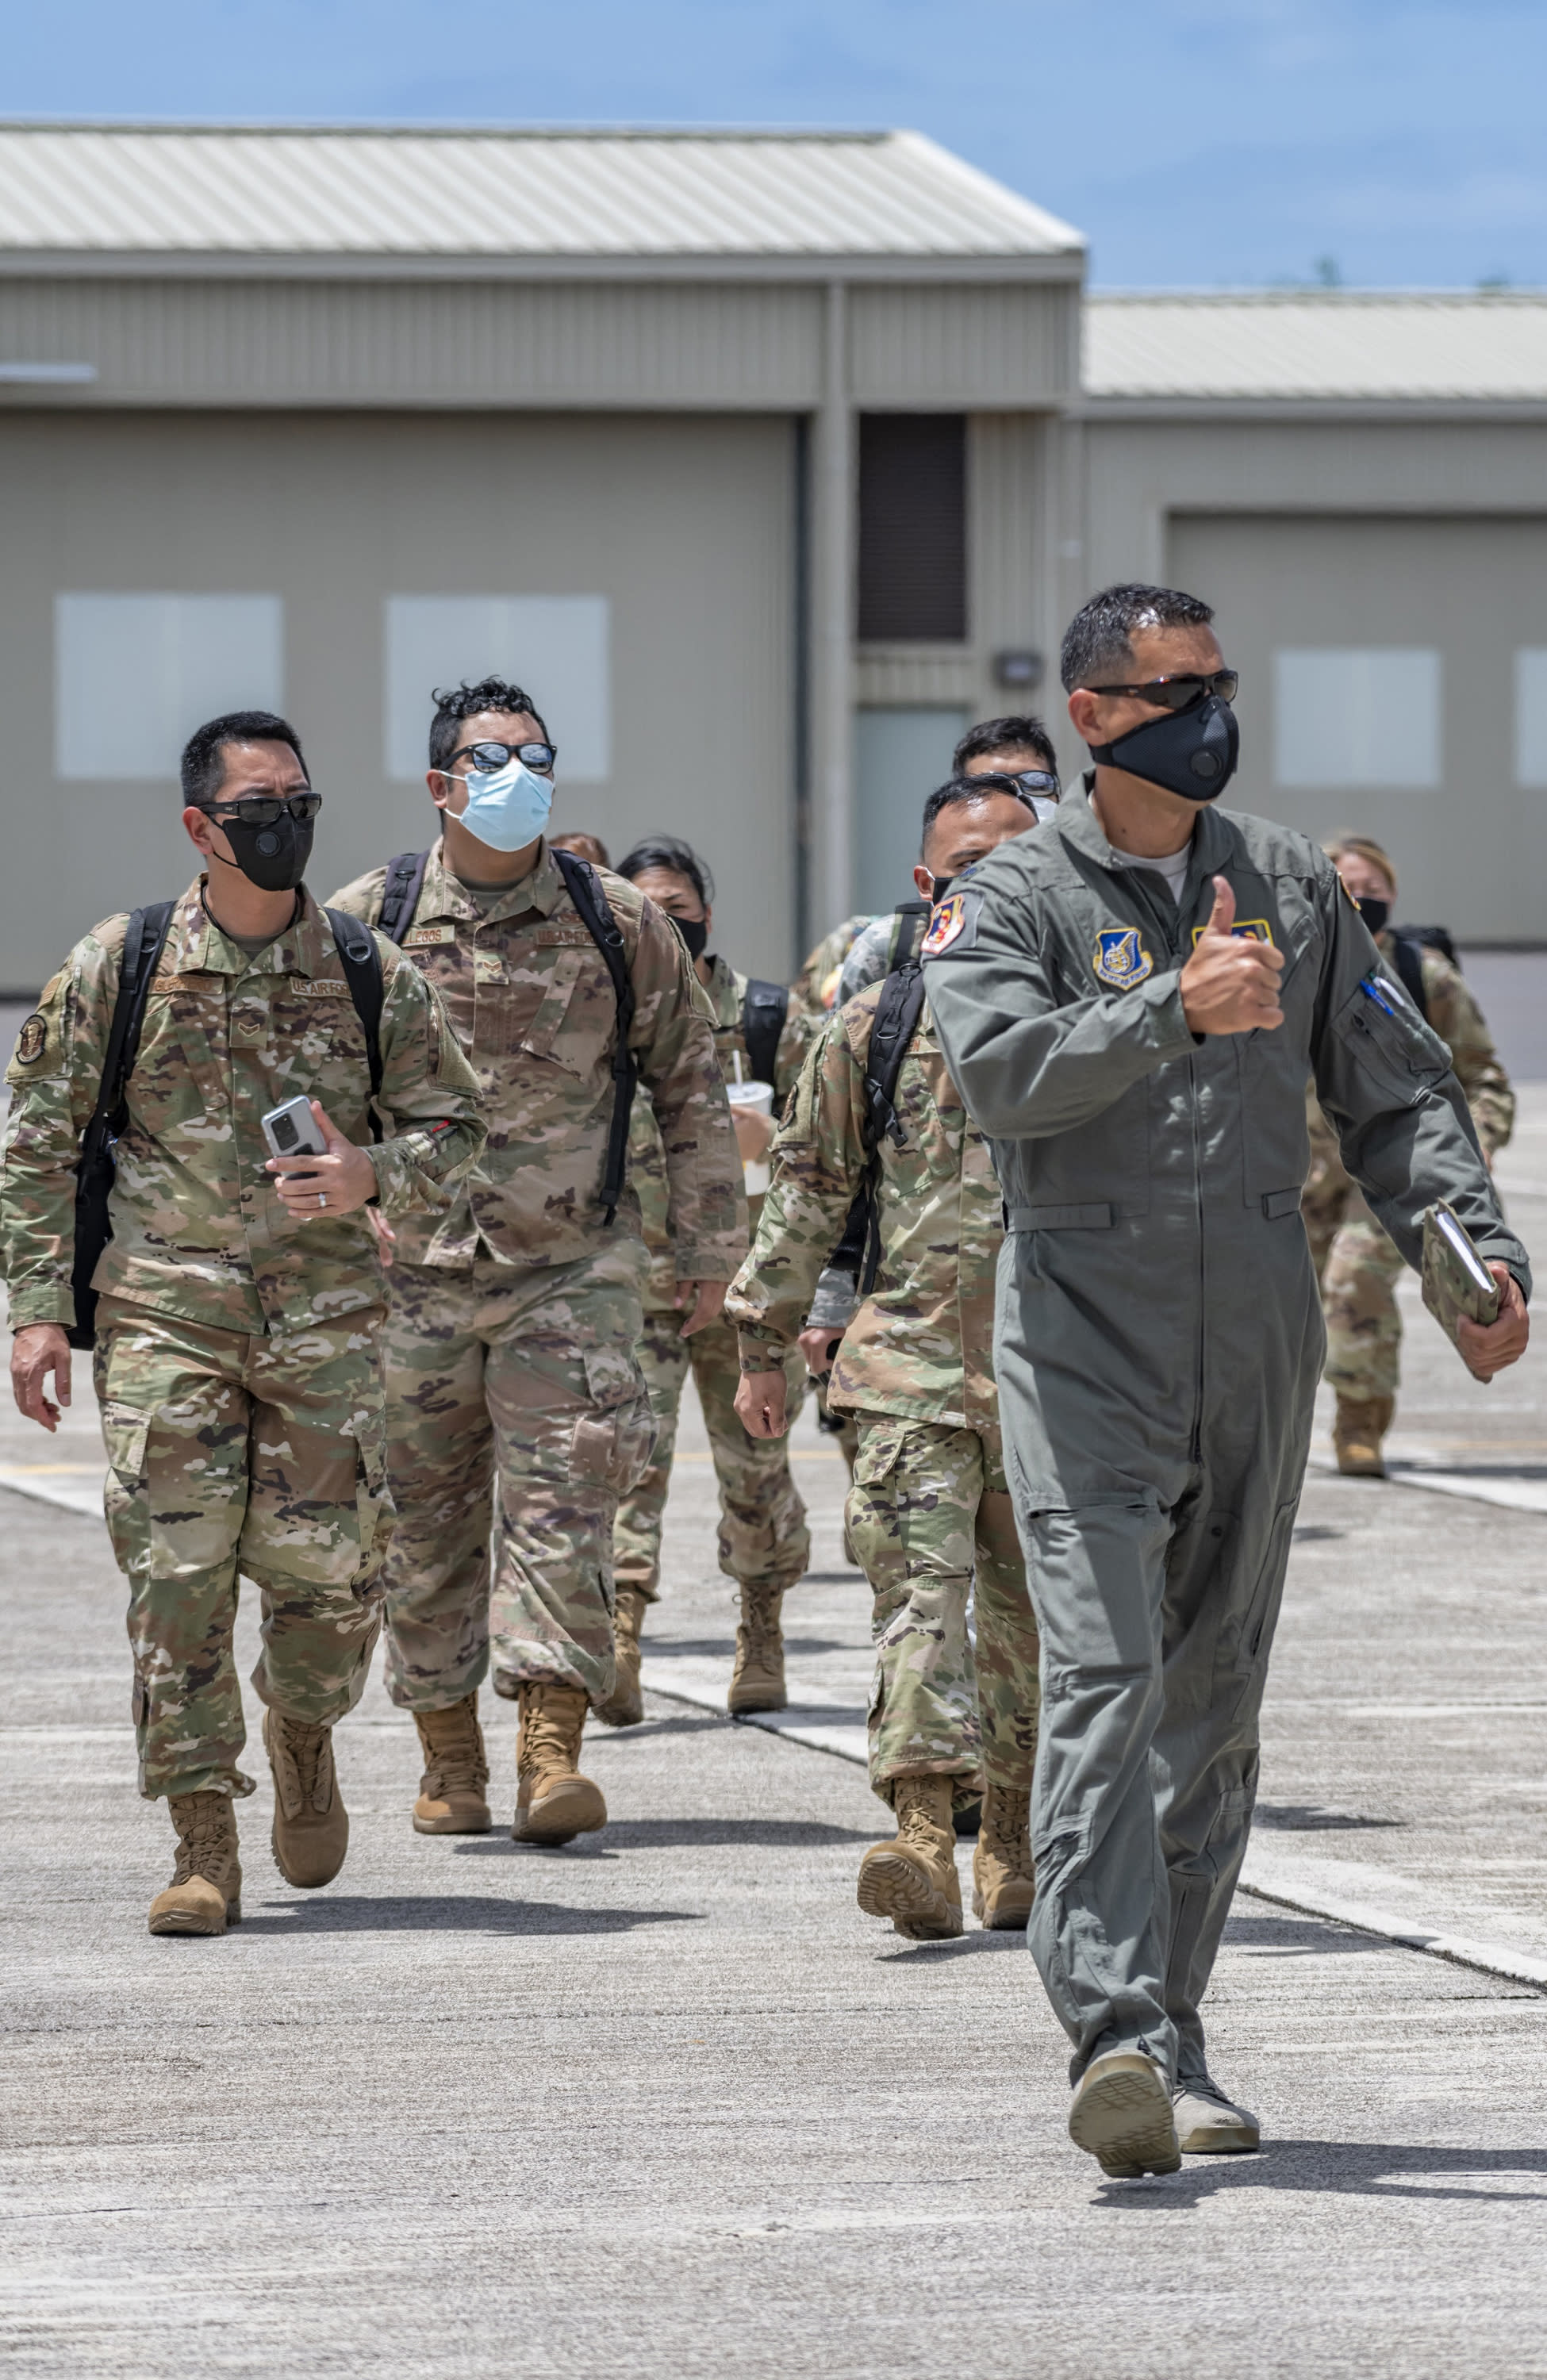 In this April 17, 2020, photo provided by the Hawaii National Guard, is Lt. Col. Kai Kahele, right, leading a group of soldiers and airmen at Kalaeloa Airfield in Kapolei, Hawaii. Kahele is the only major candidate in the race to succeed U.S. Rep. Tulsi Gabbard, virtually guaranteeing he will be sworn in as Hawaii's newest congressman in January. (Sgt. John Schoebel/Hawaii National Guard via AP)